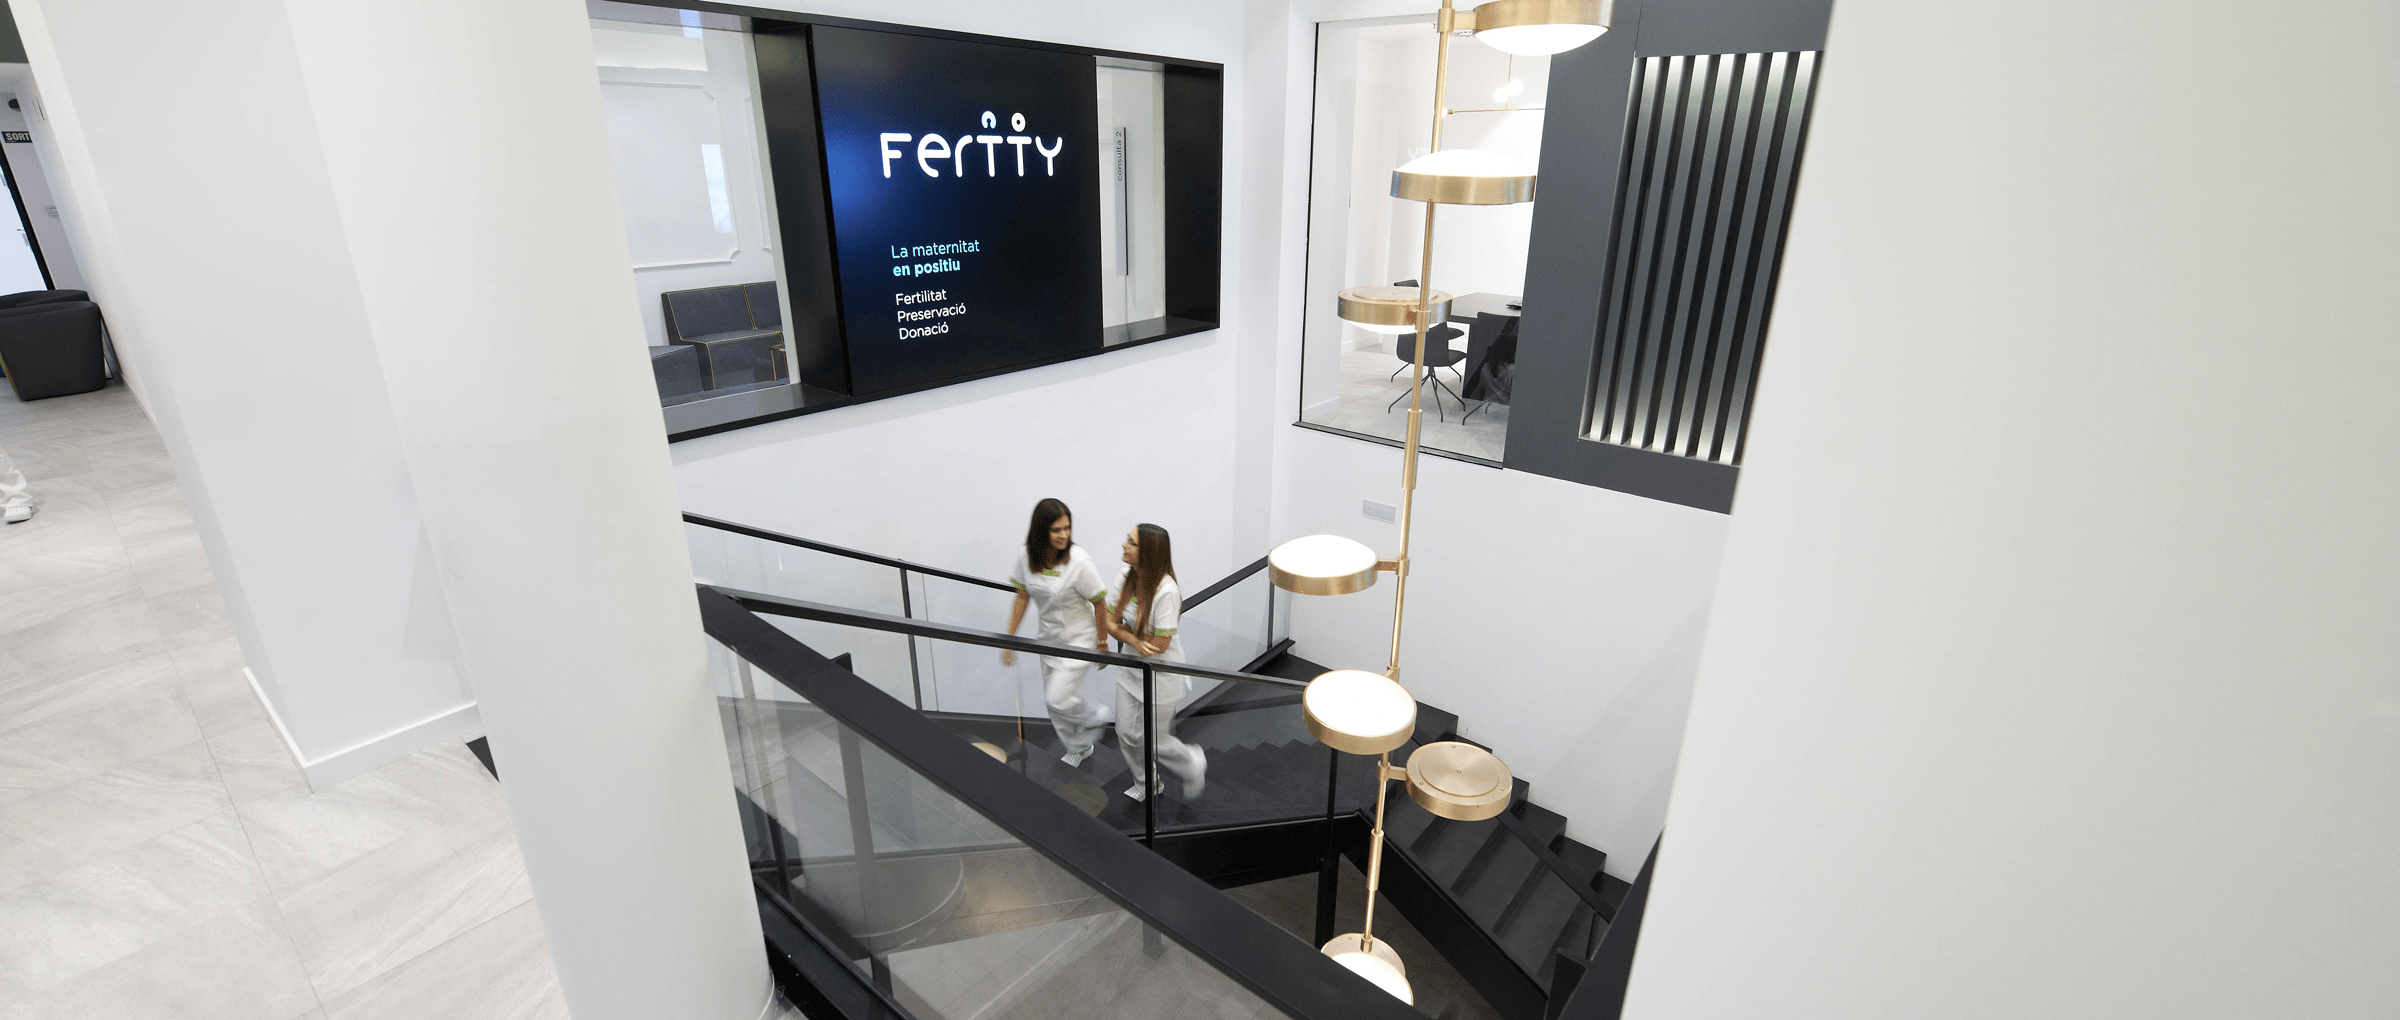 Instalations of Fertty in Barcelona